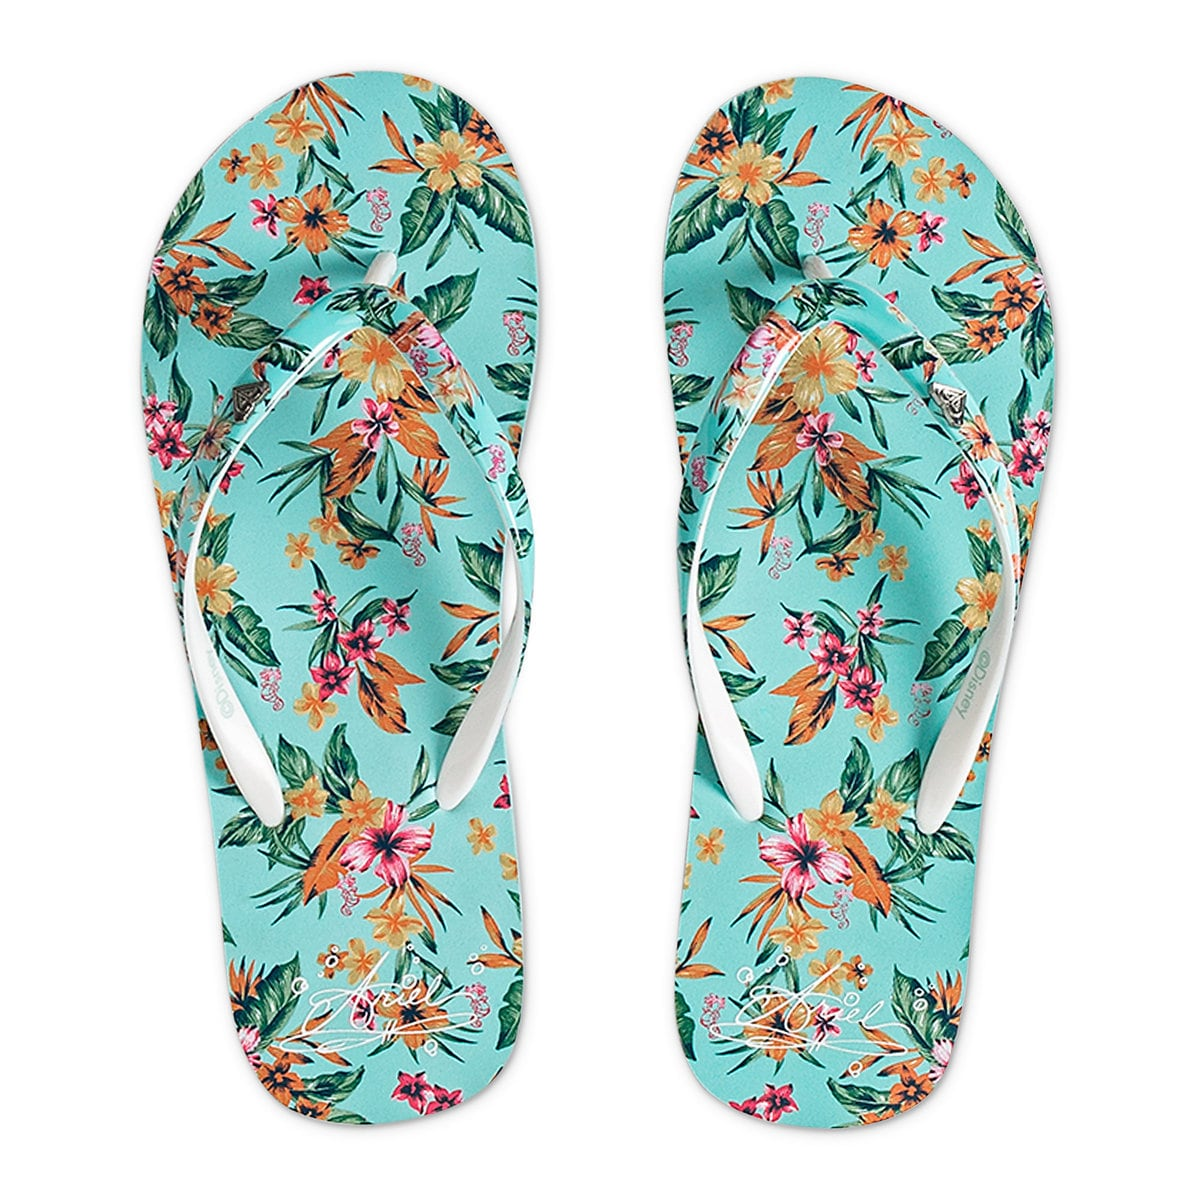 a834a725f057 Product Image of Ariel Flip Flops for Girls by ROXY Girl   1